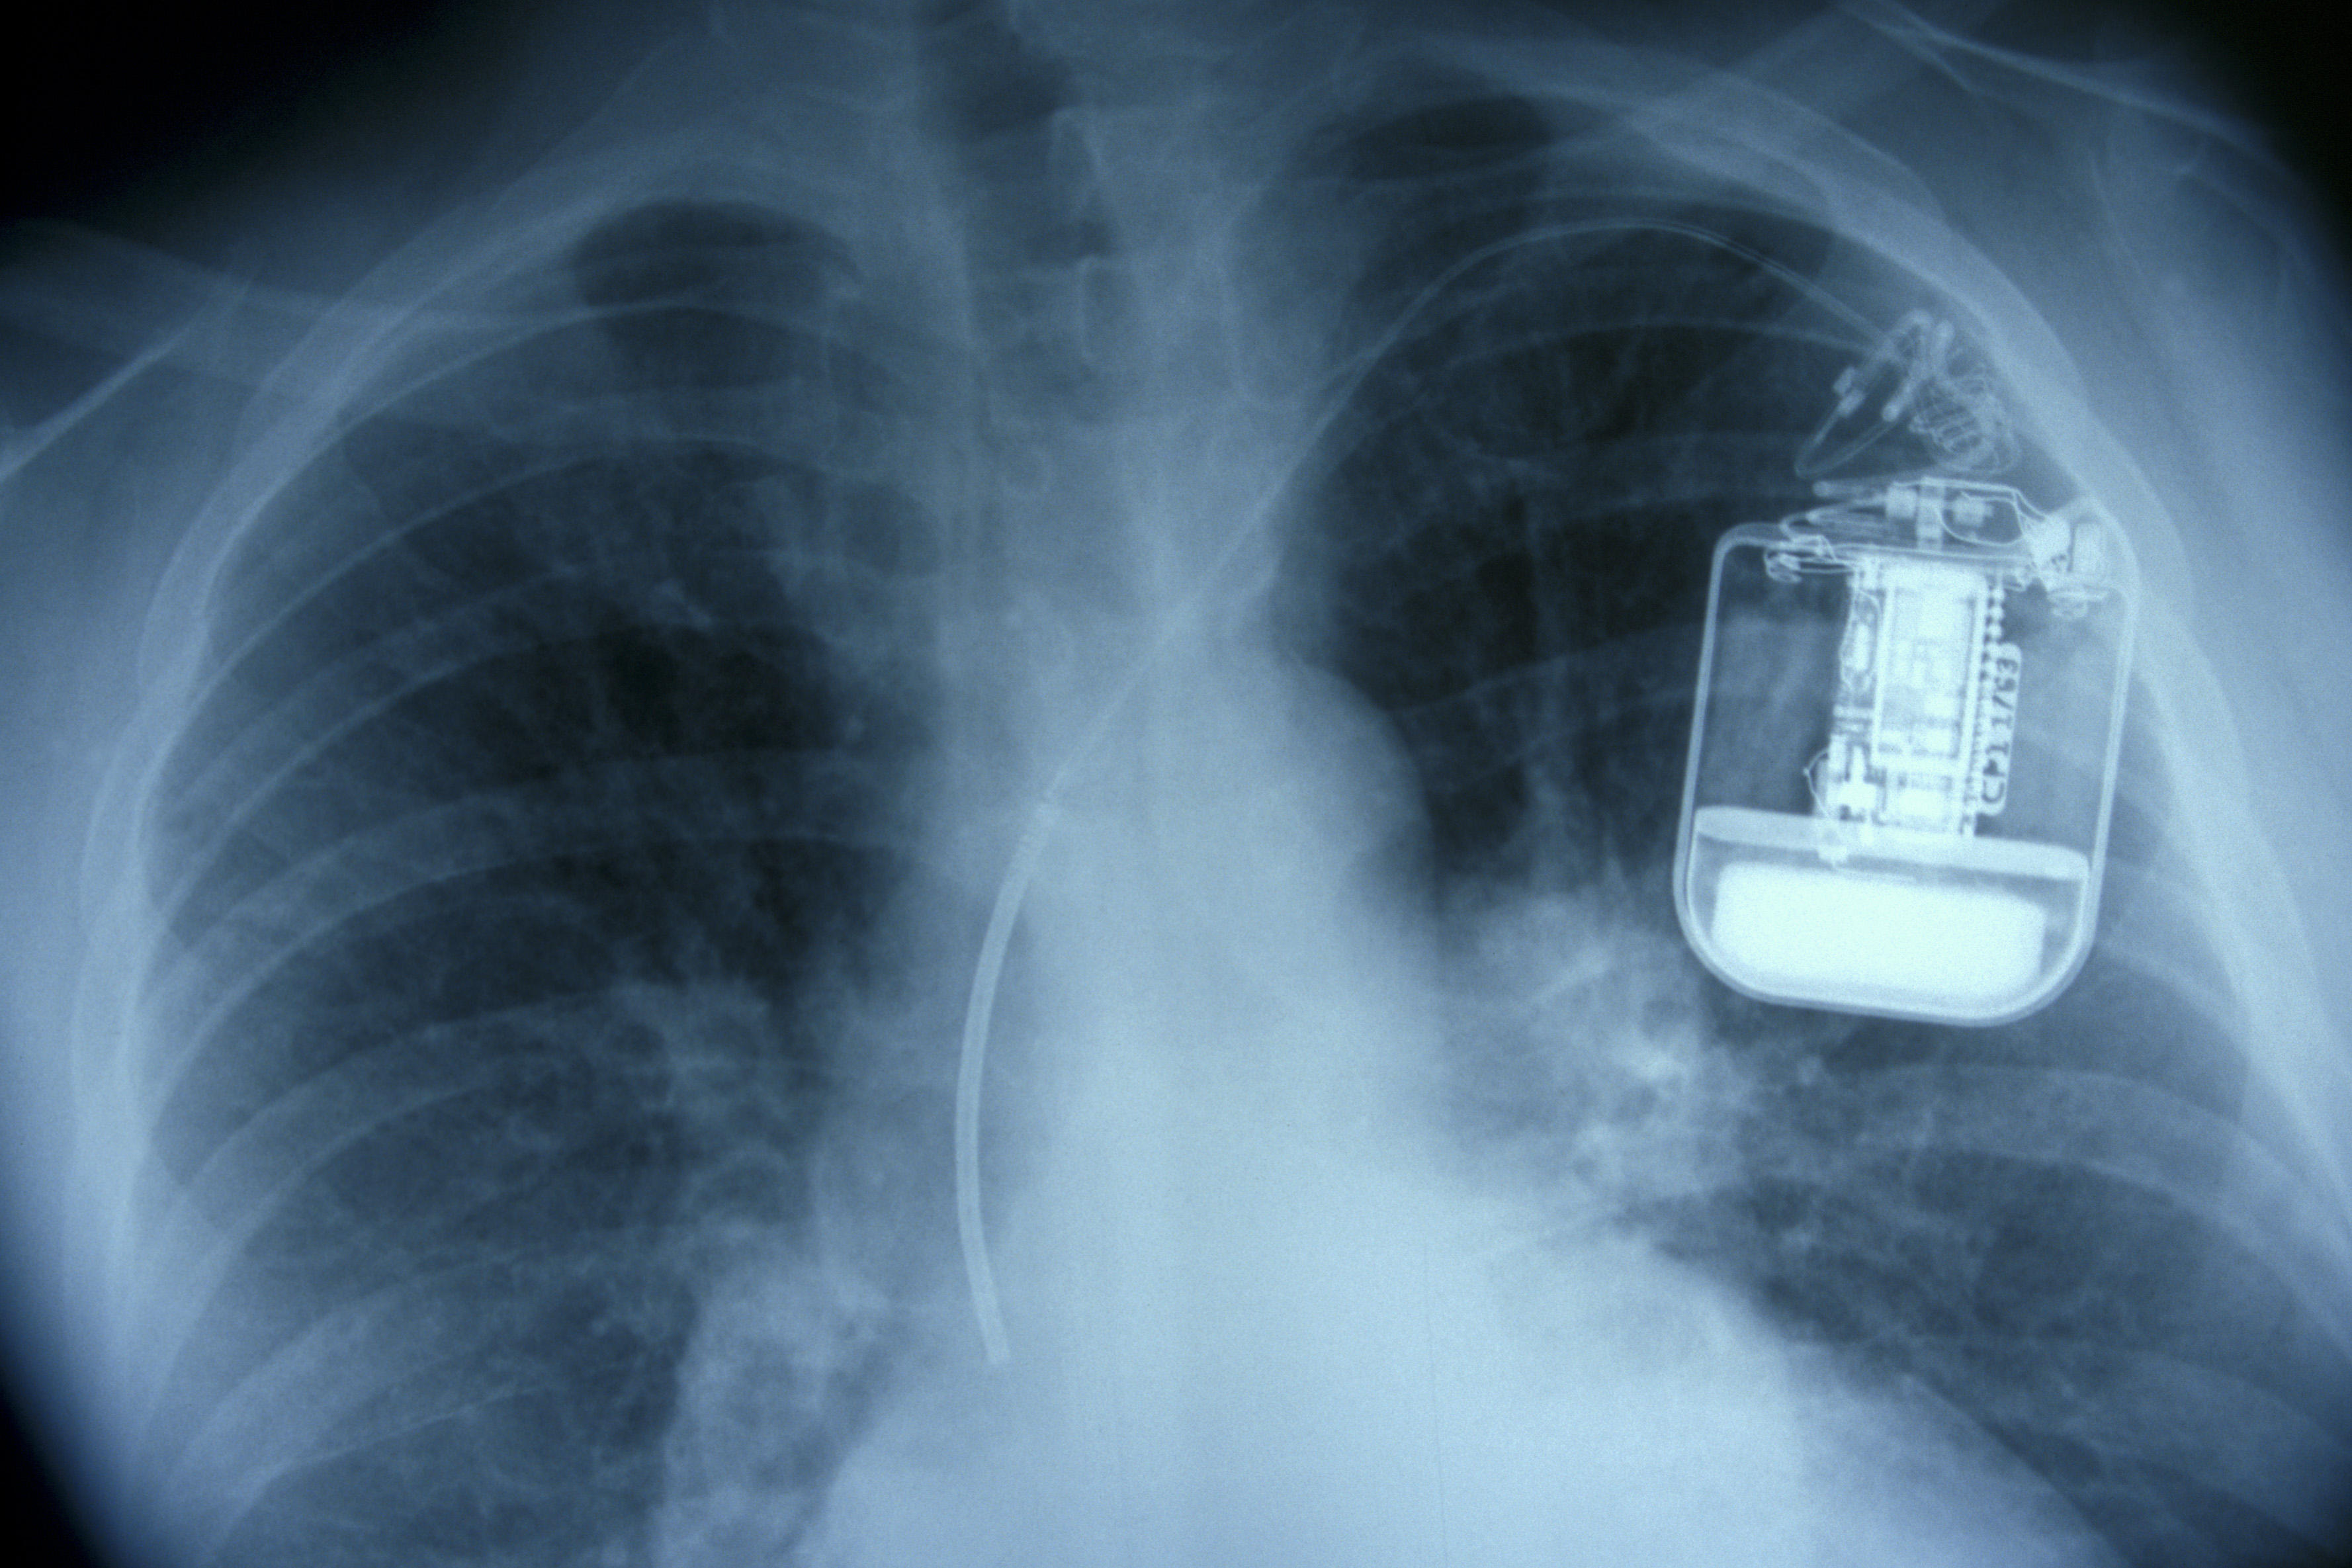 Lung X-Ray showing Pacemaker